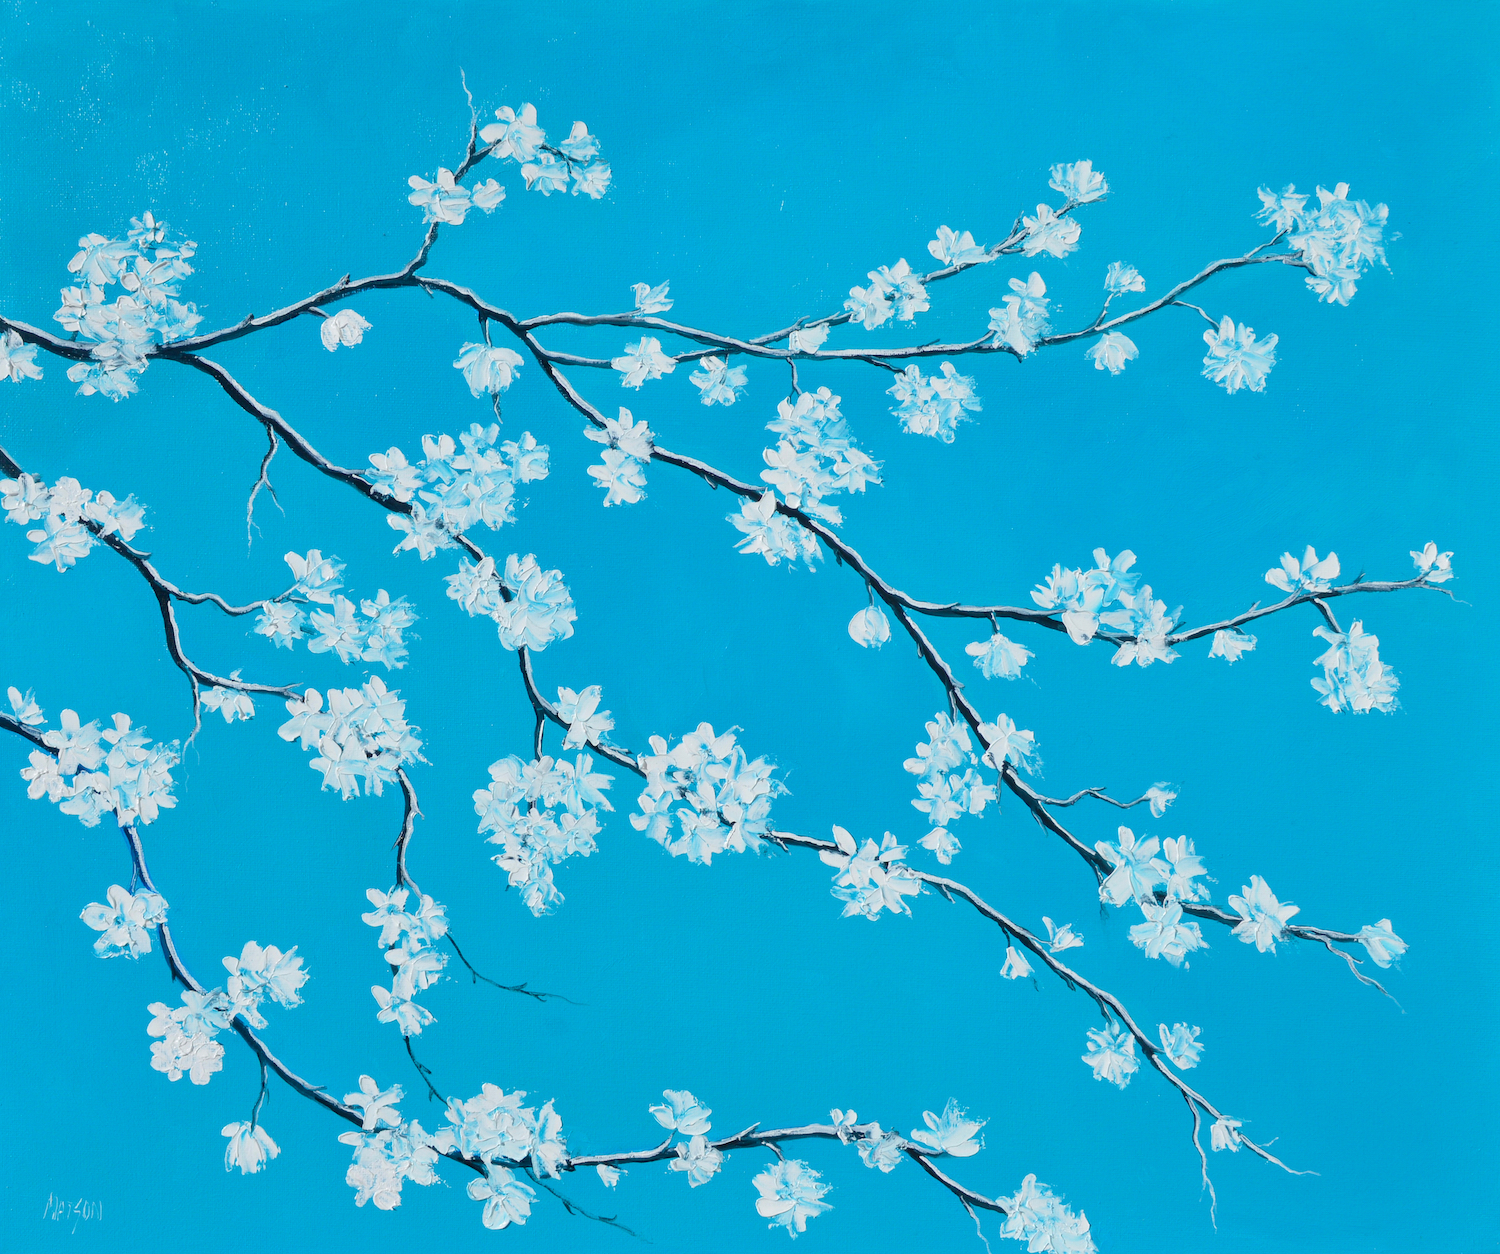 White Blossom On Turquoise Blue, Painting By Jan Matson 2019